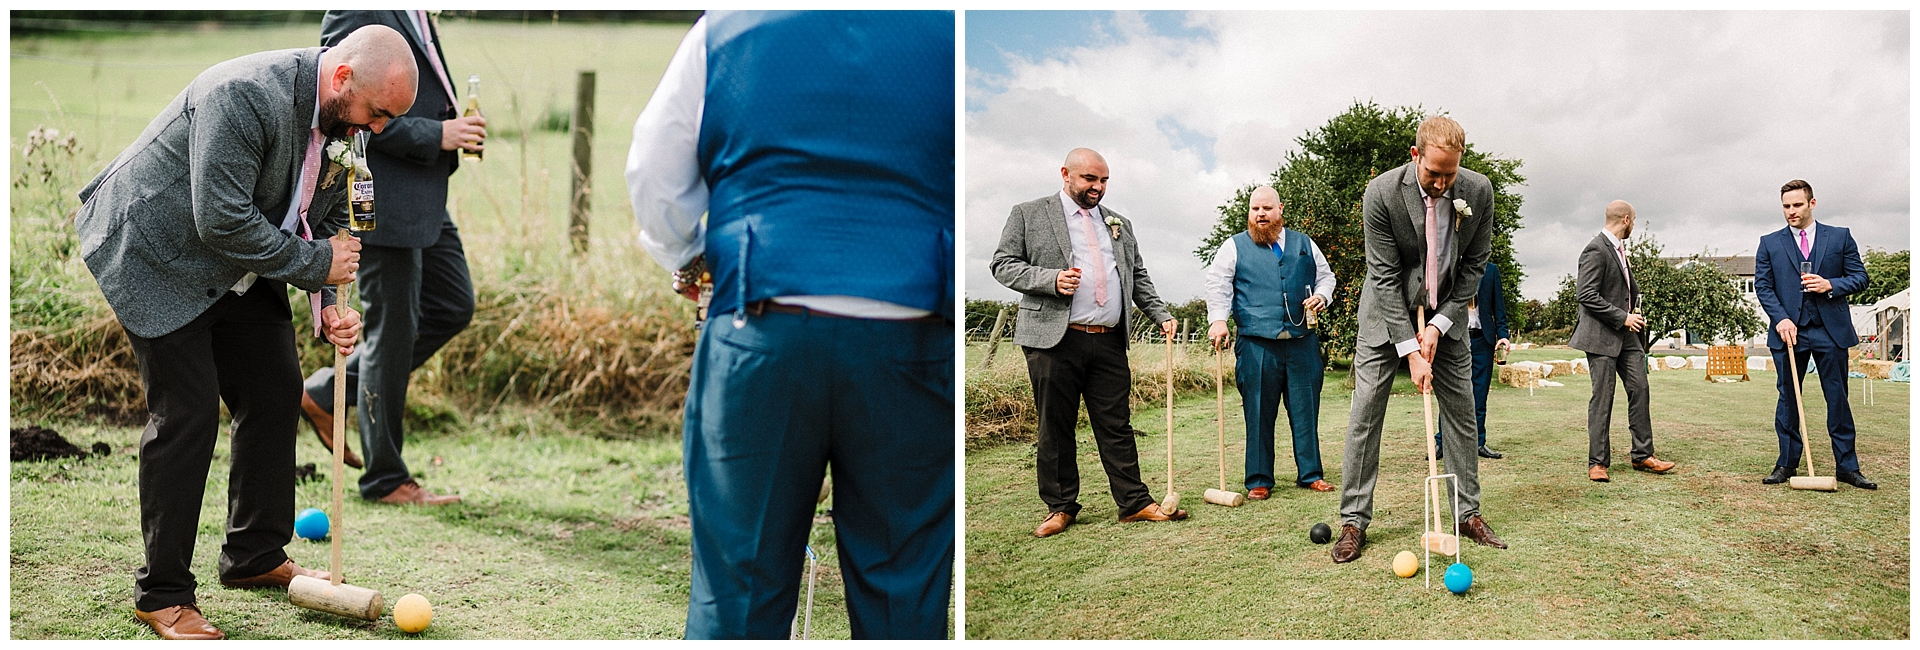 guests playing lawn games at a wedding.jpg